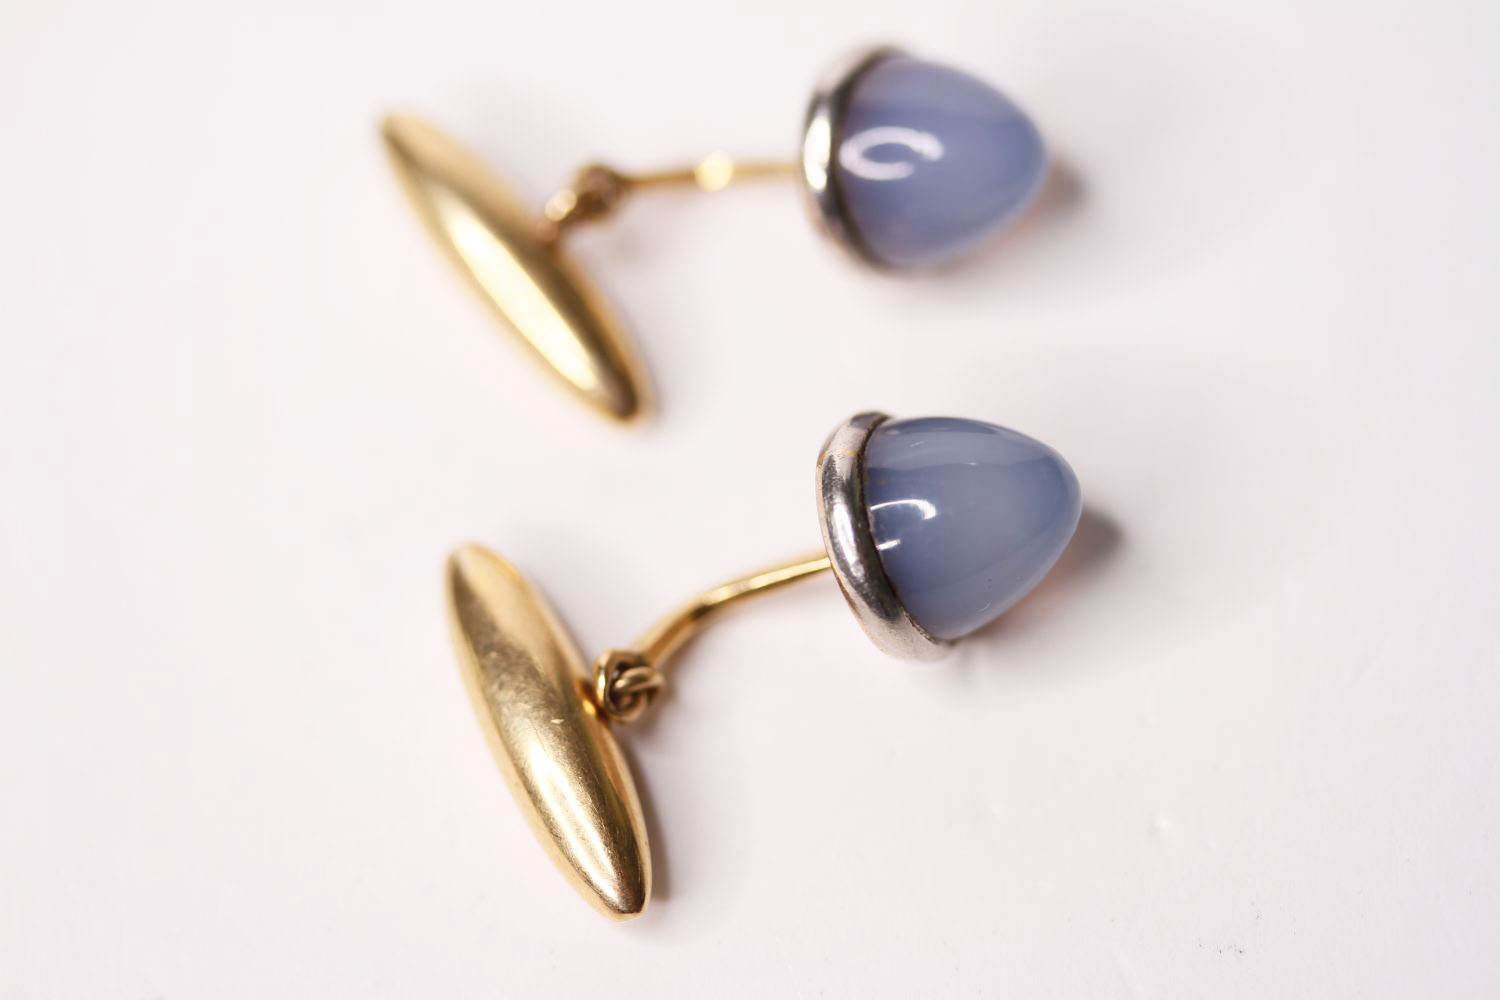 Pair Of Cabochon Chalcedony Cufflinks, each set with a cabochon cut chalcedony, 18ct gold - Image 2 of 2